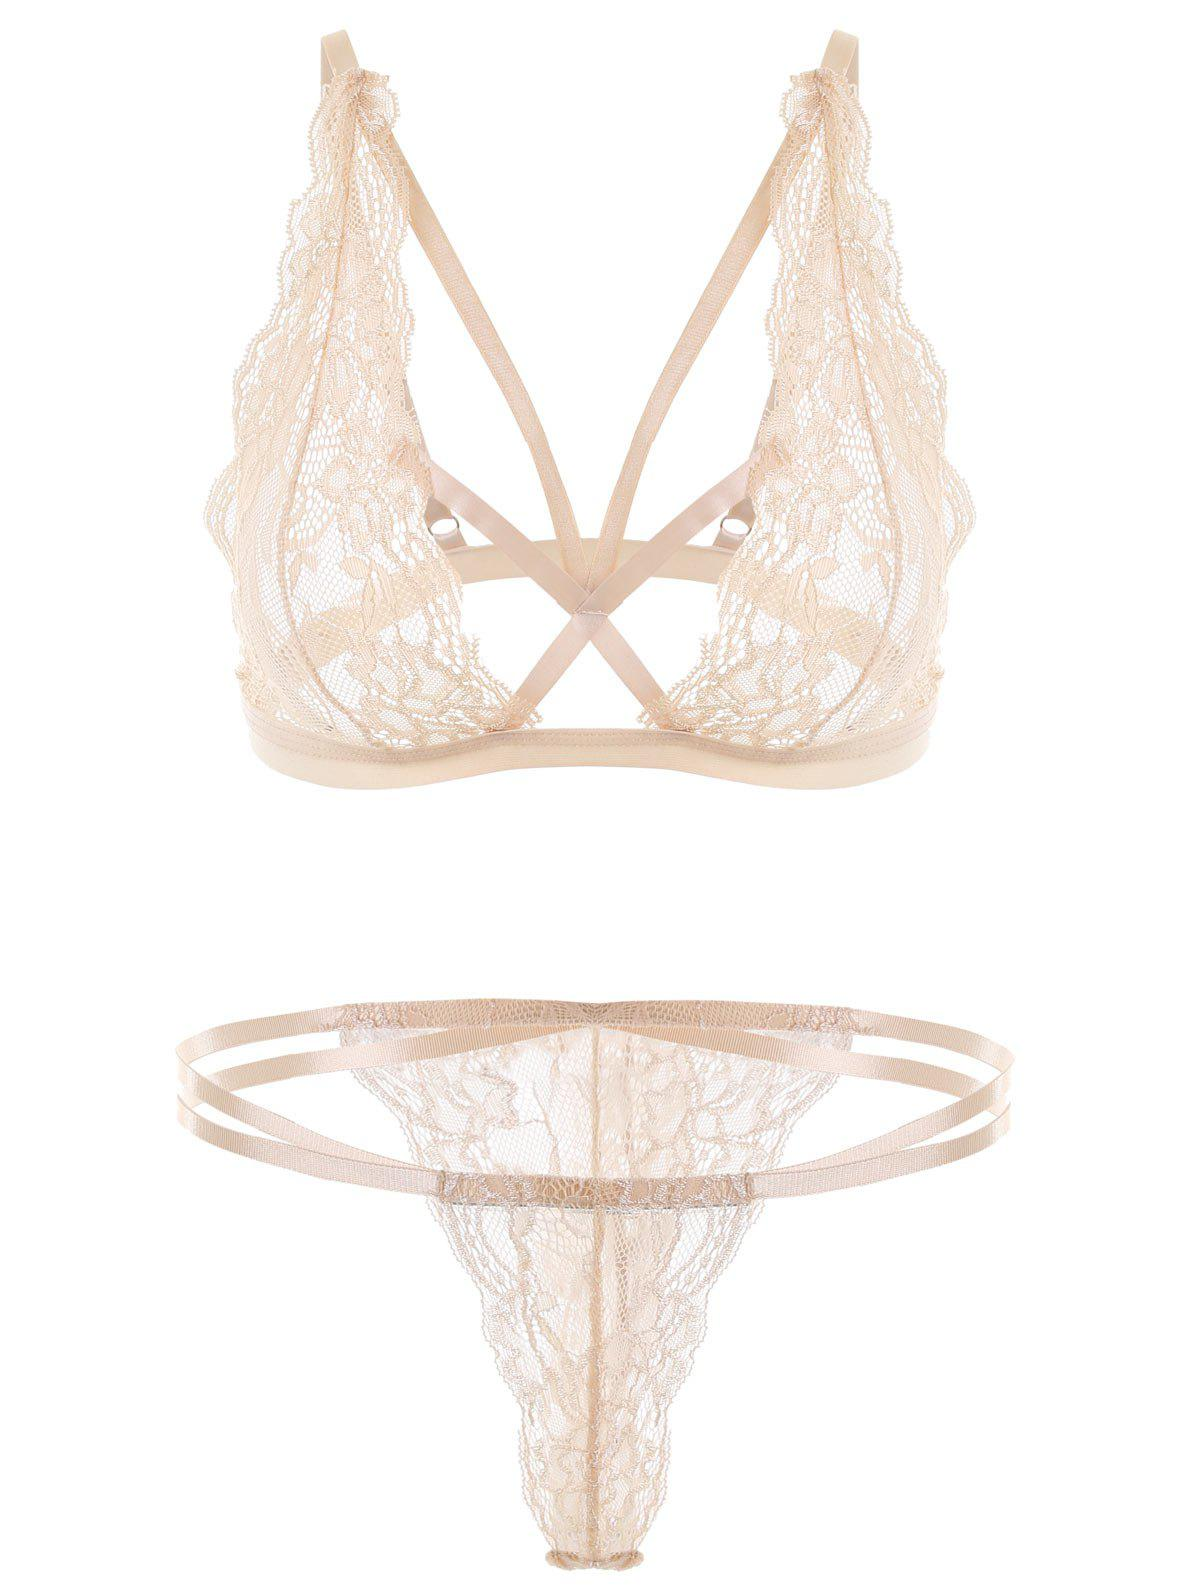 Unlined Strappy Lace Thong Bra Set 233551002